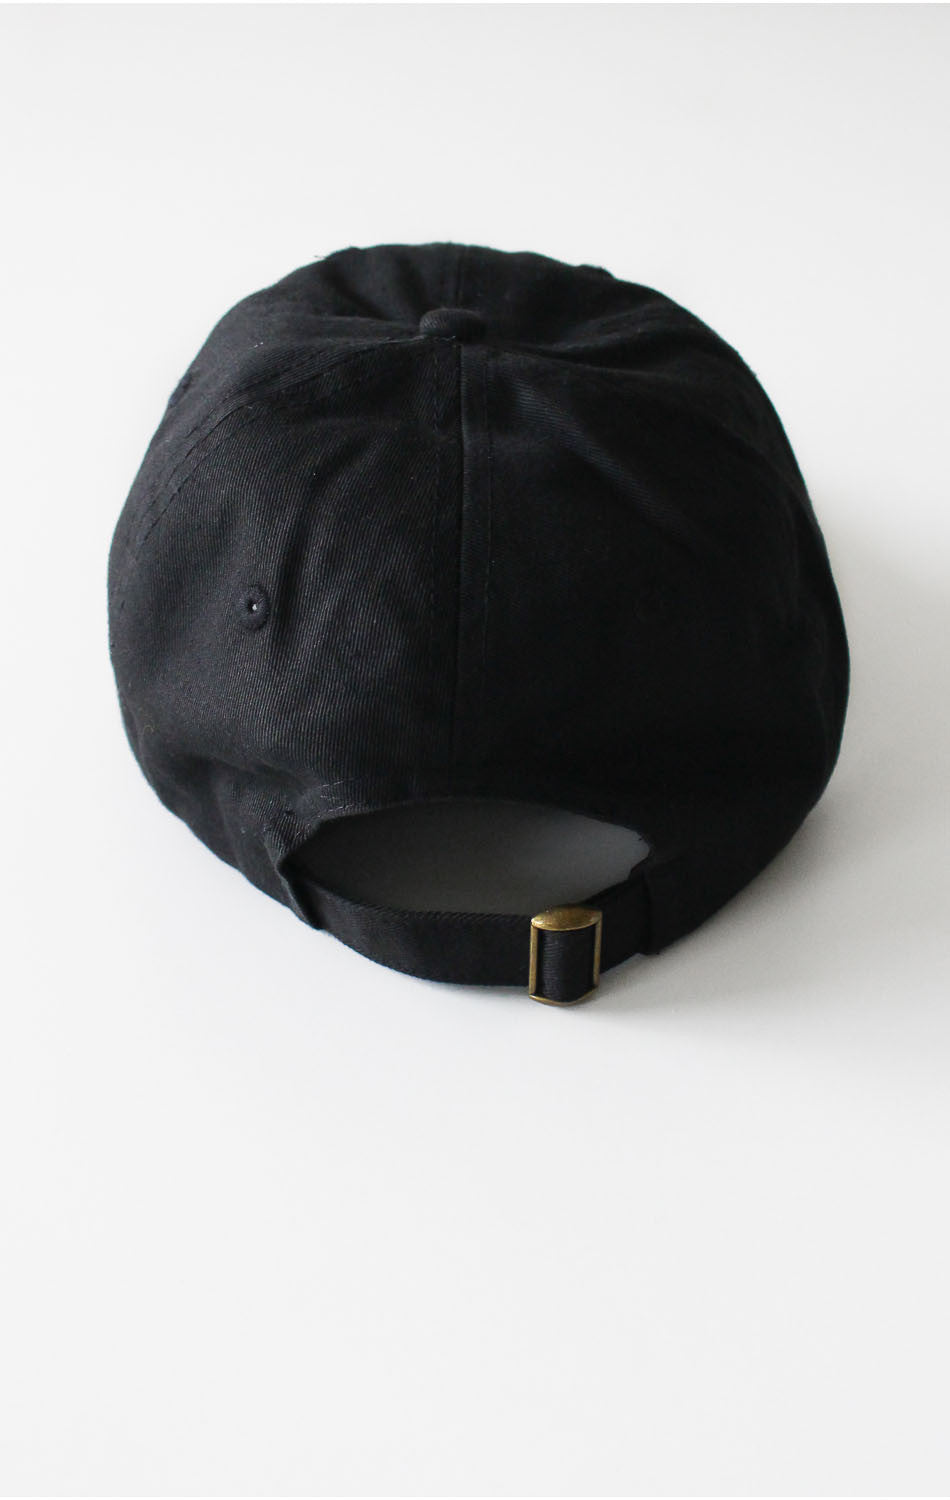 New York 199x Cap - Black